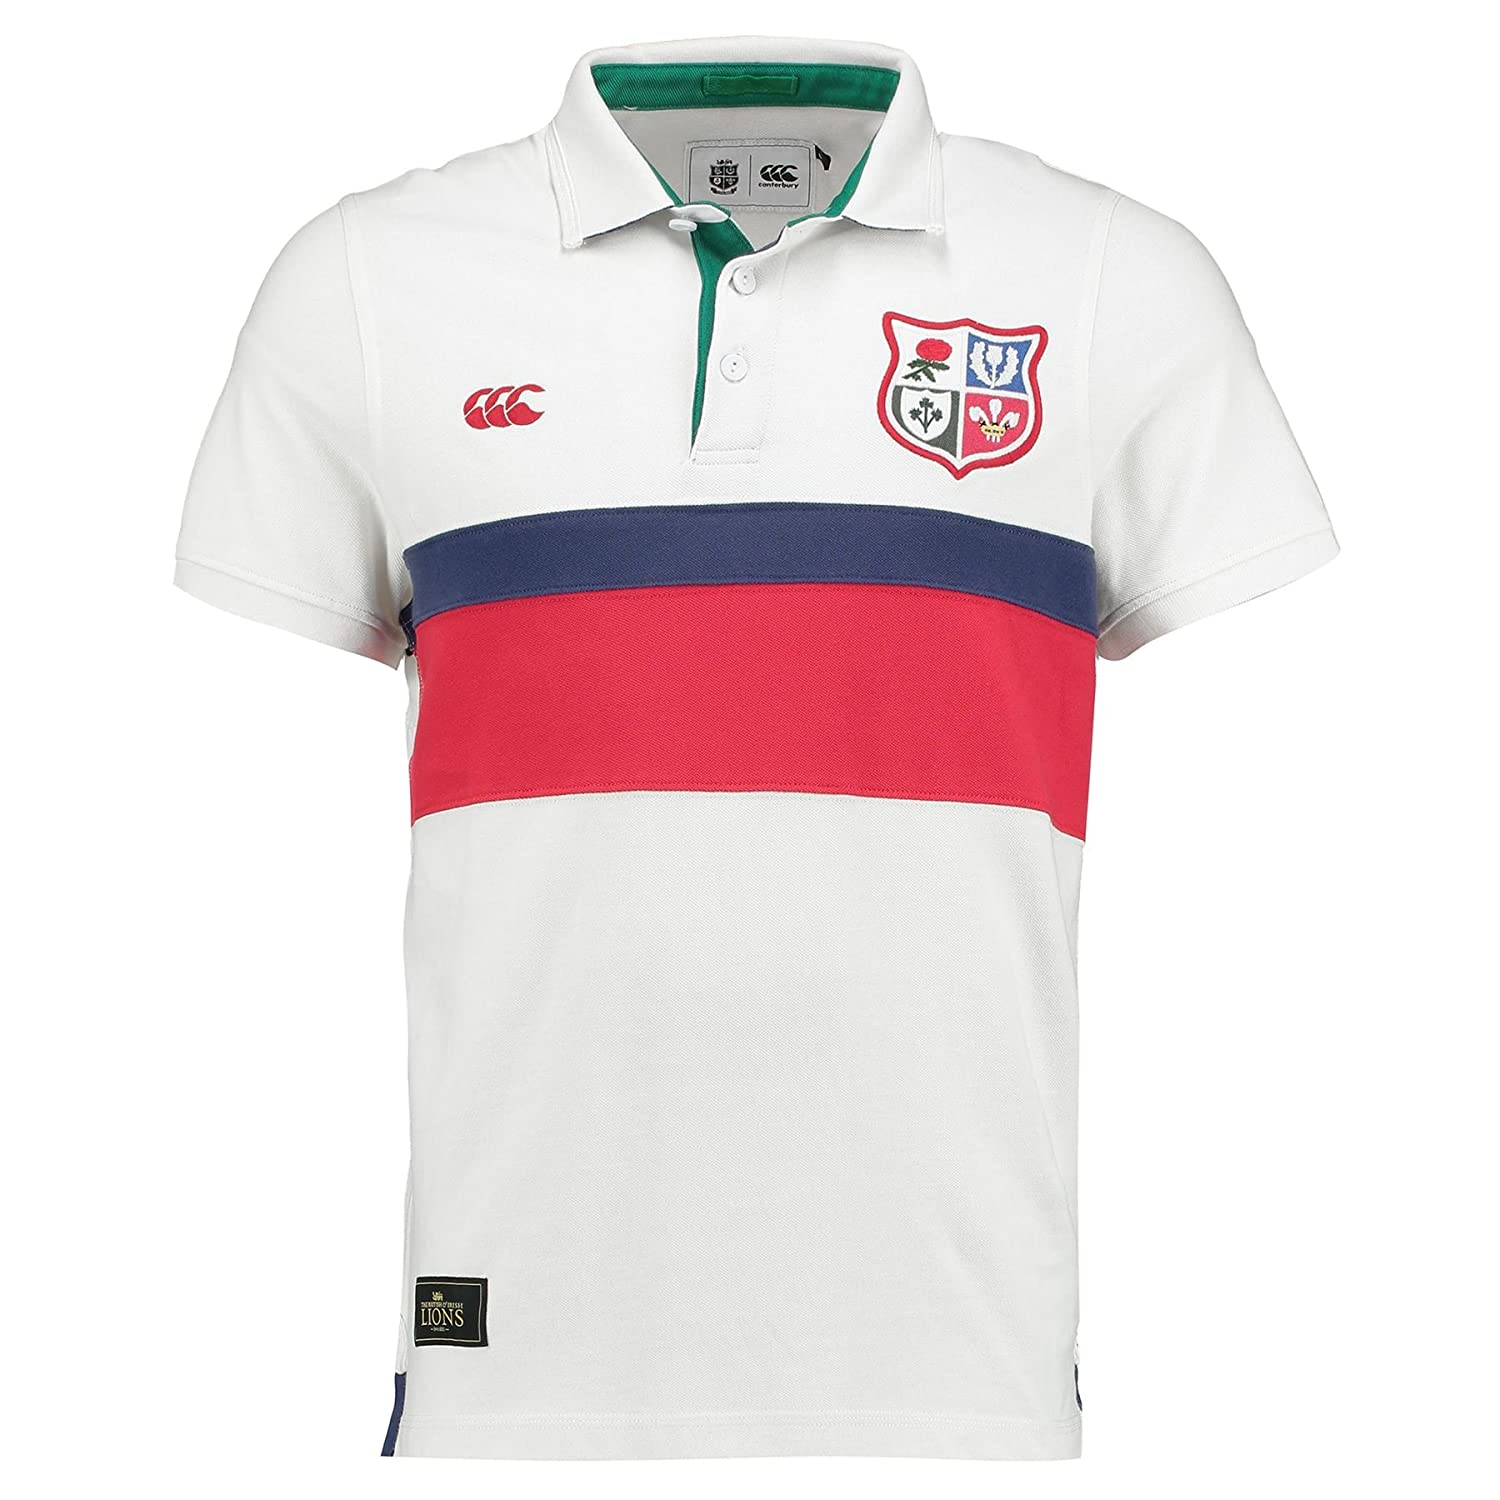 British & Irish Lions Mens Panelled Pique Rugby Polo Shirt Top ...